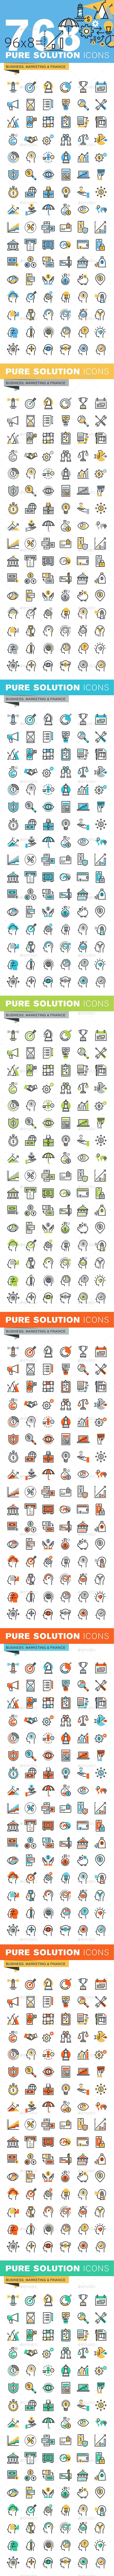 Set of Thin Line Flat Design Icons of Business and Finance. Download here: http://graphicriver.net/item/set-of-thin-line-flat-design-icons-of-business-and-finance/14787278?ref=ksioks